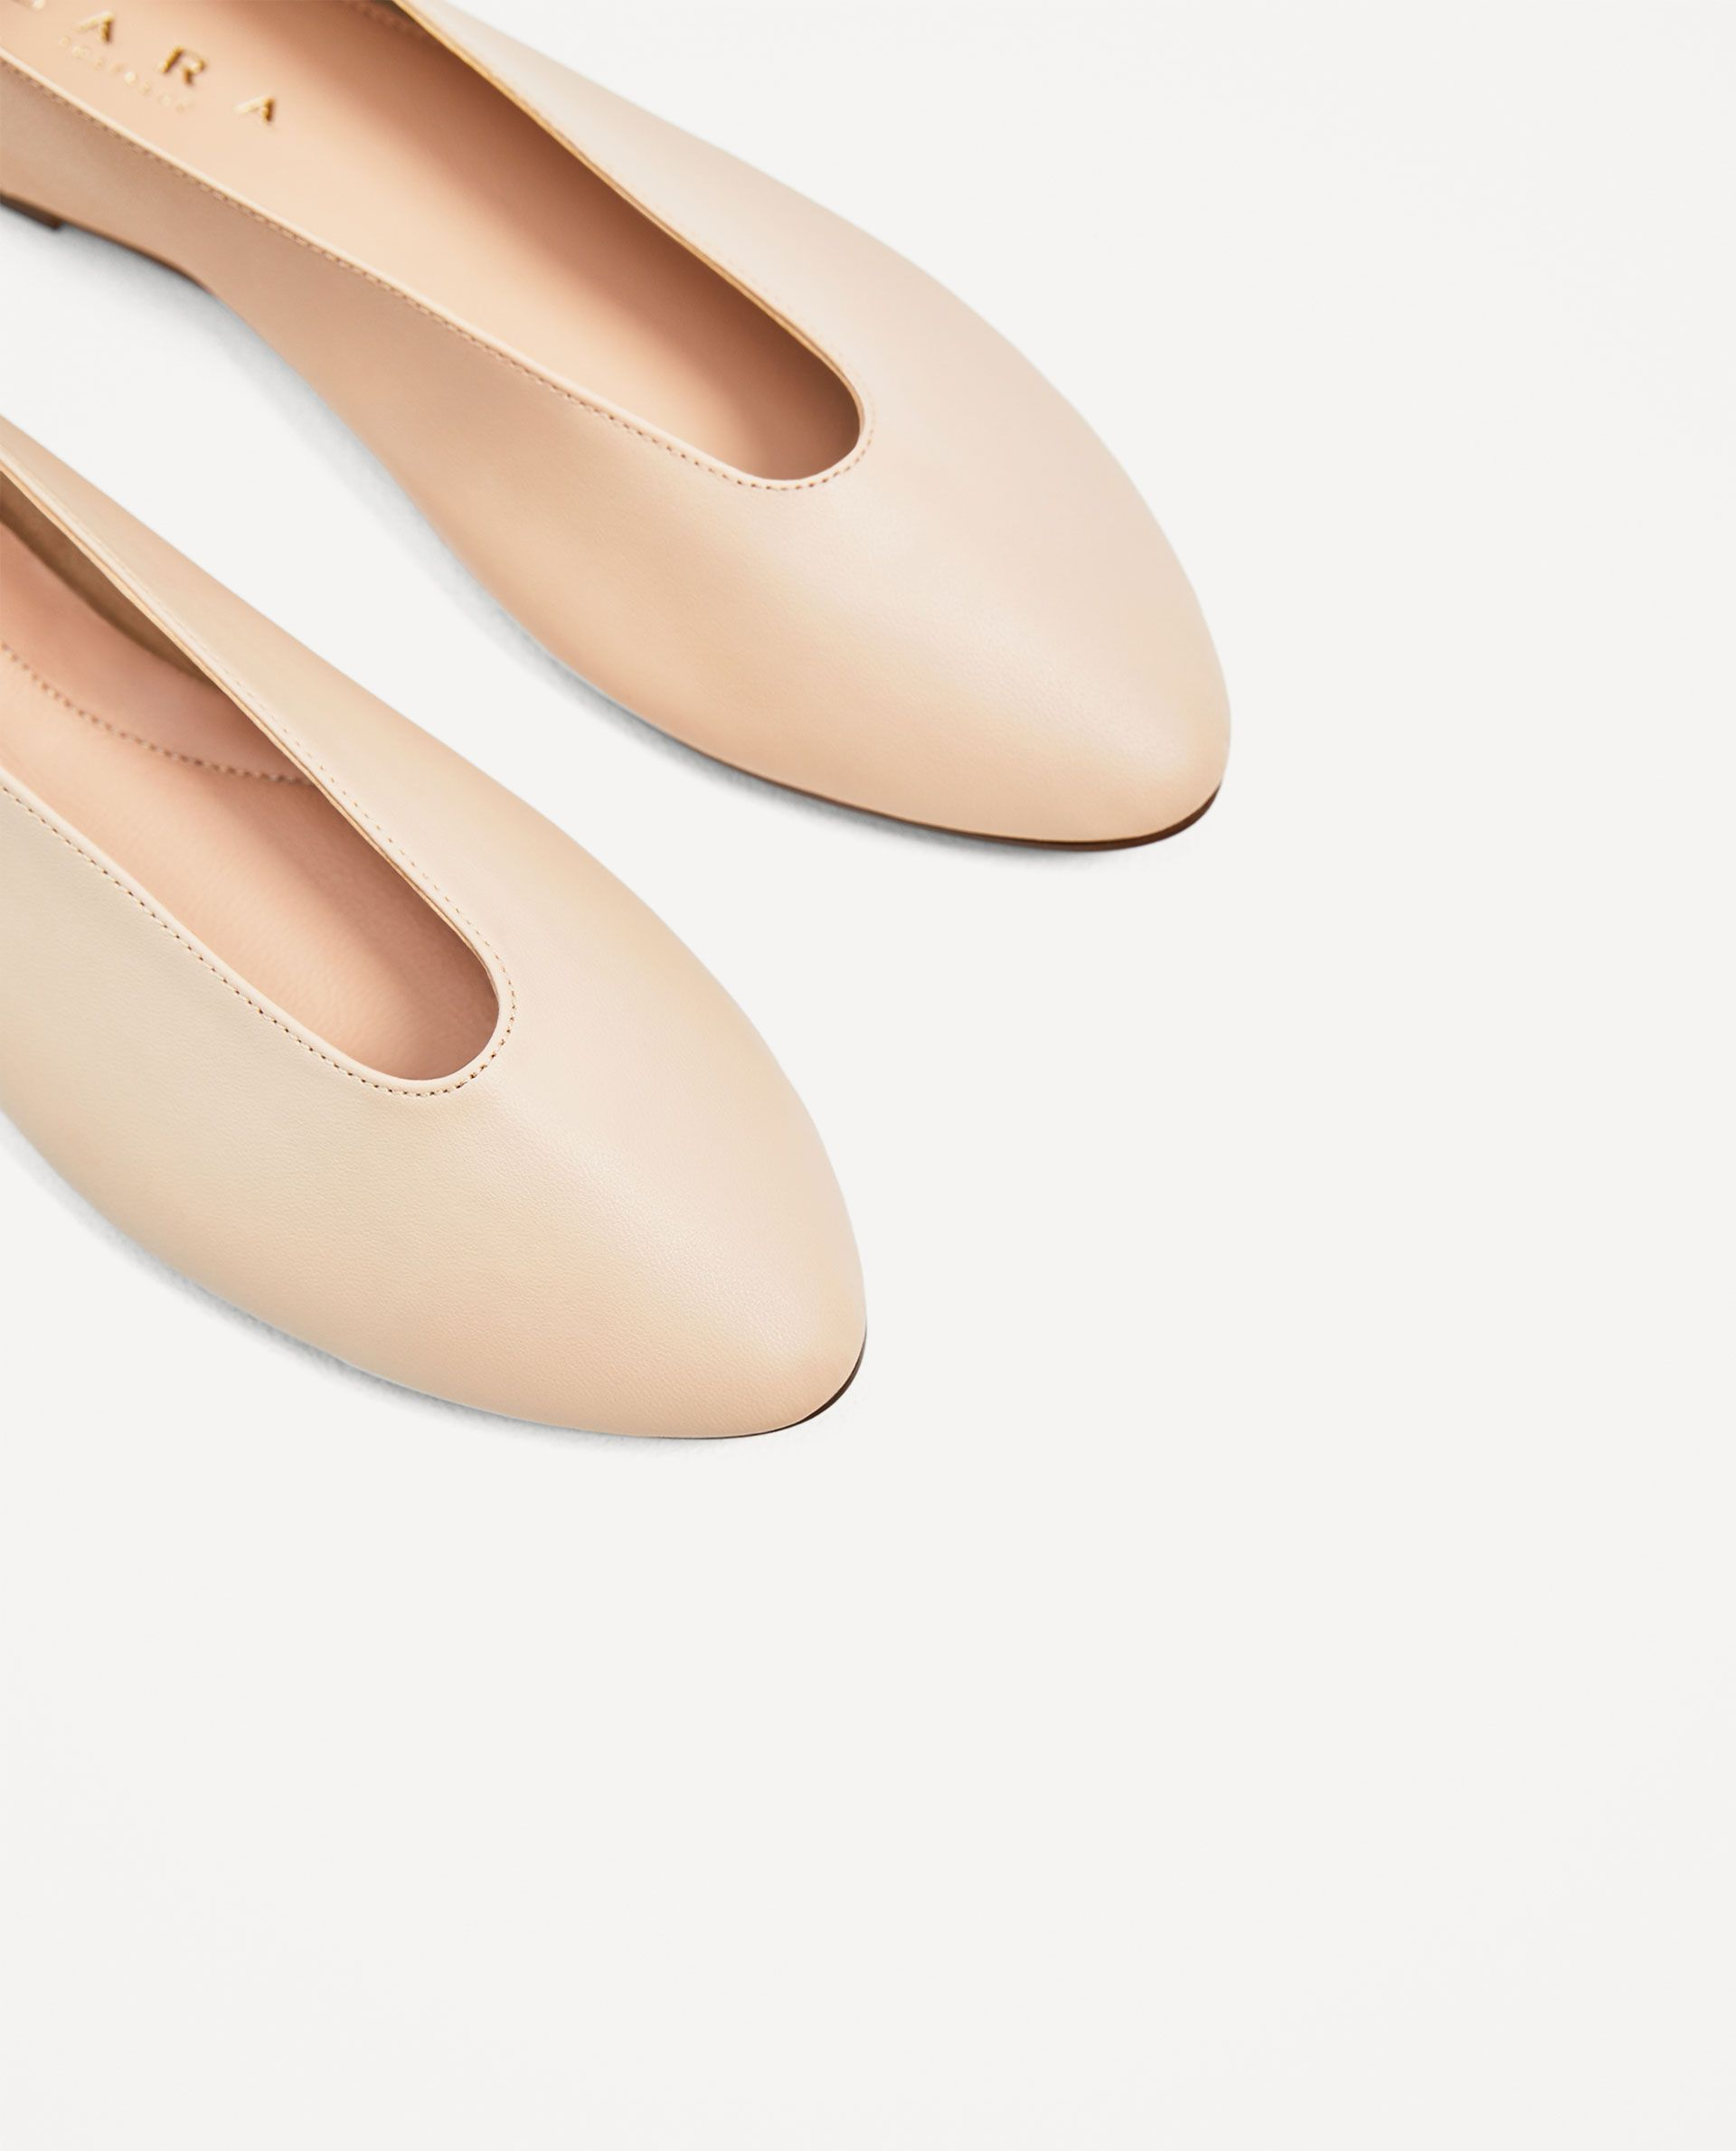 f7e123052f6a4 Image 4 of V-CUT LEATHER BALLERINAS from Zara | Shoes | Ballerina ...